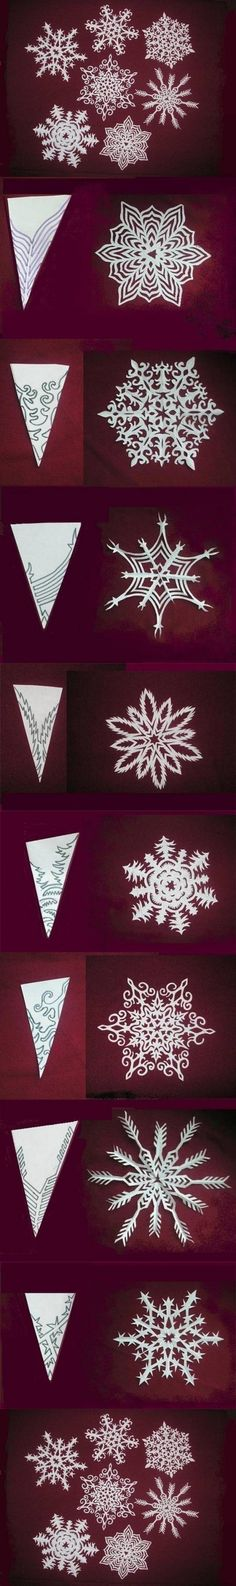 How to make beautiful Snowflakes Paper craft DIY tutorial instructions | How To Instructions